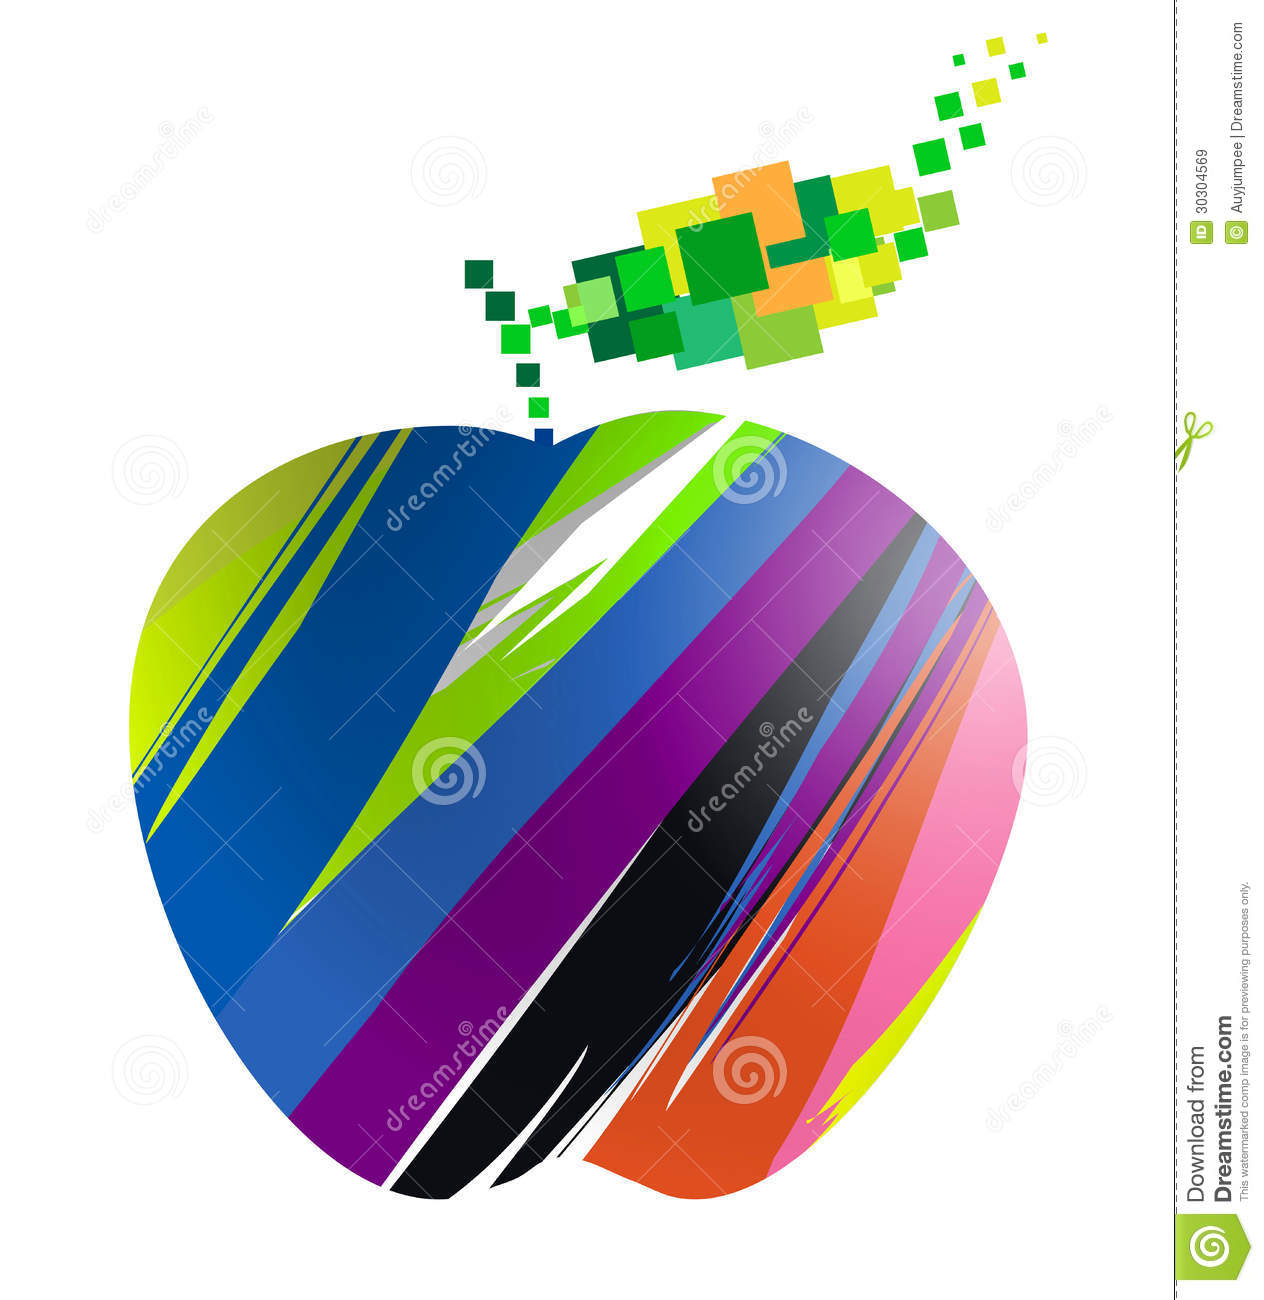 colorful apple symbol stock vector. illustration of care - 30304569